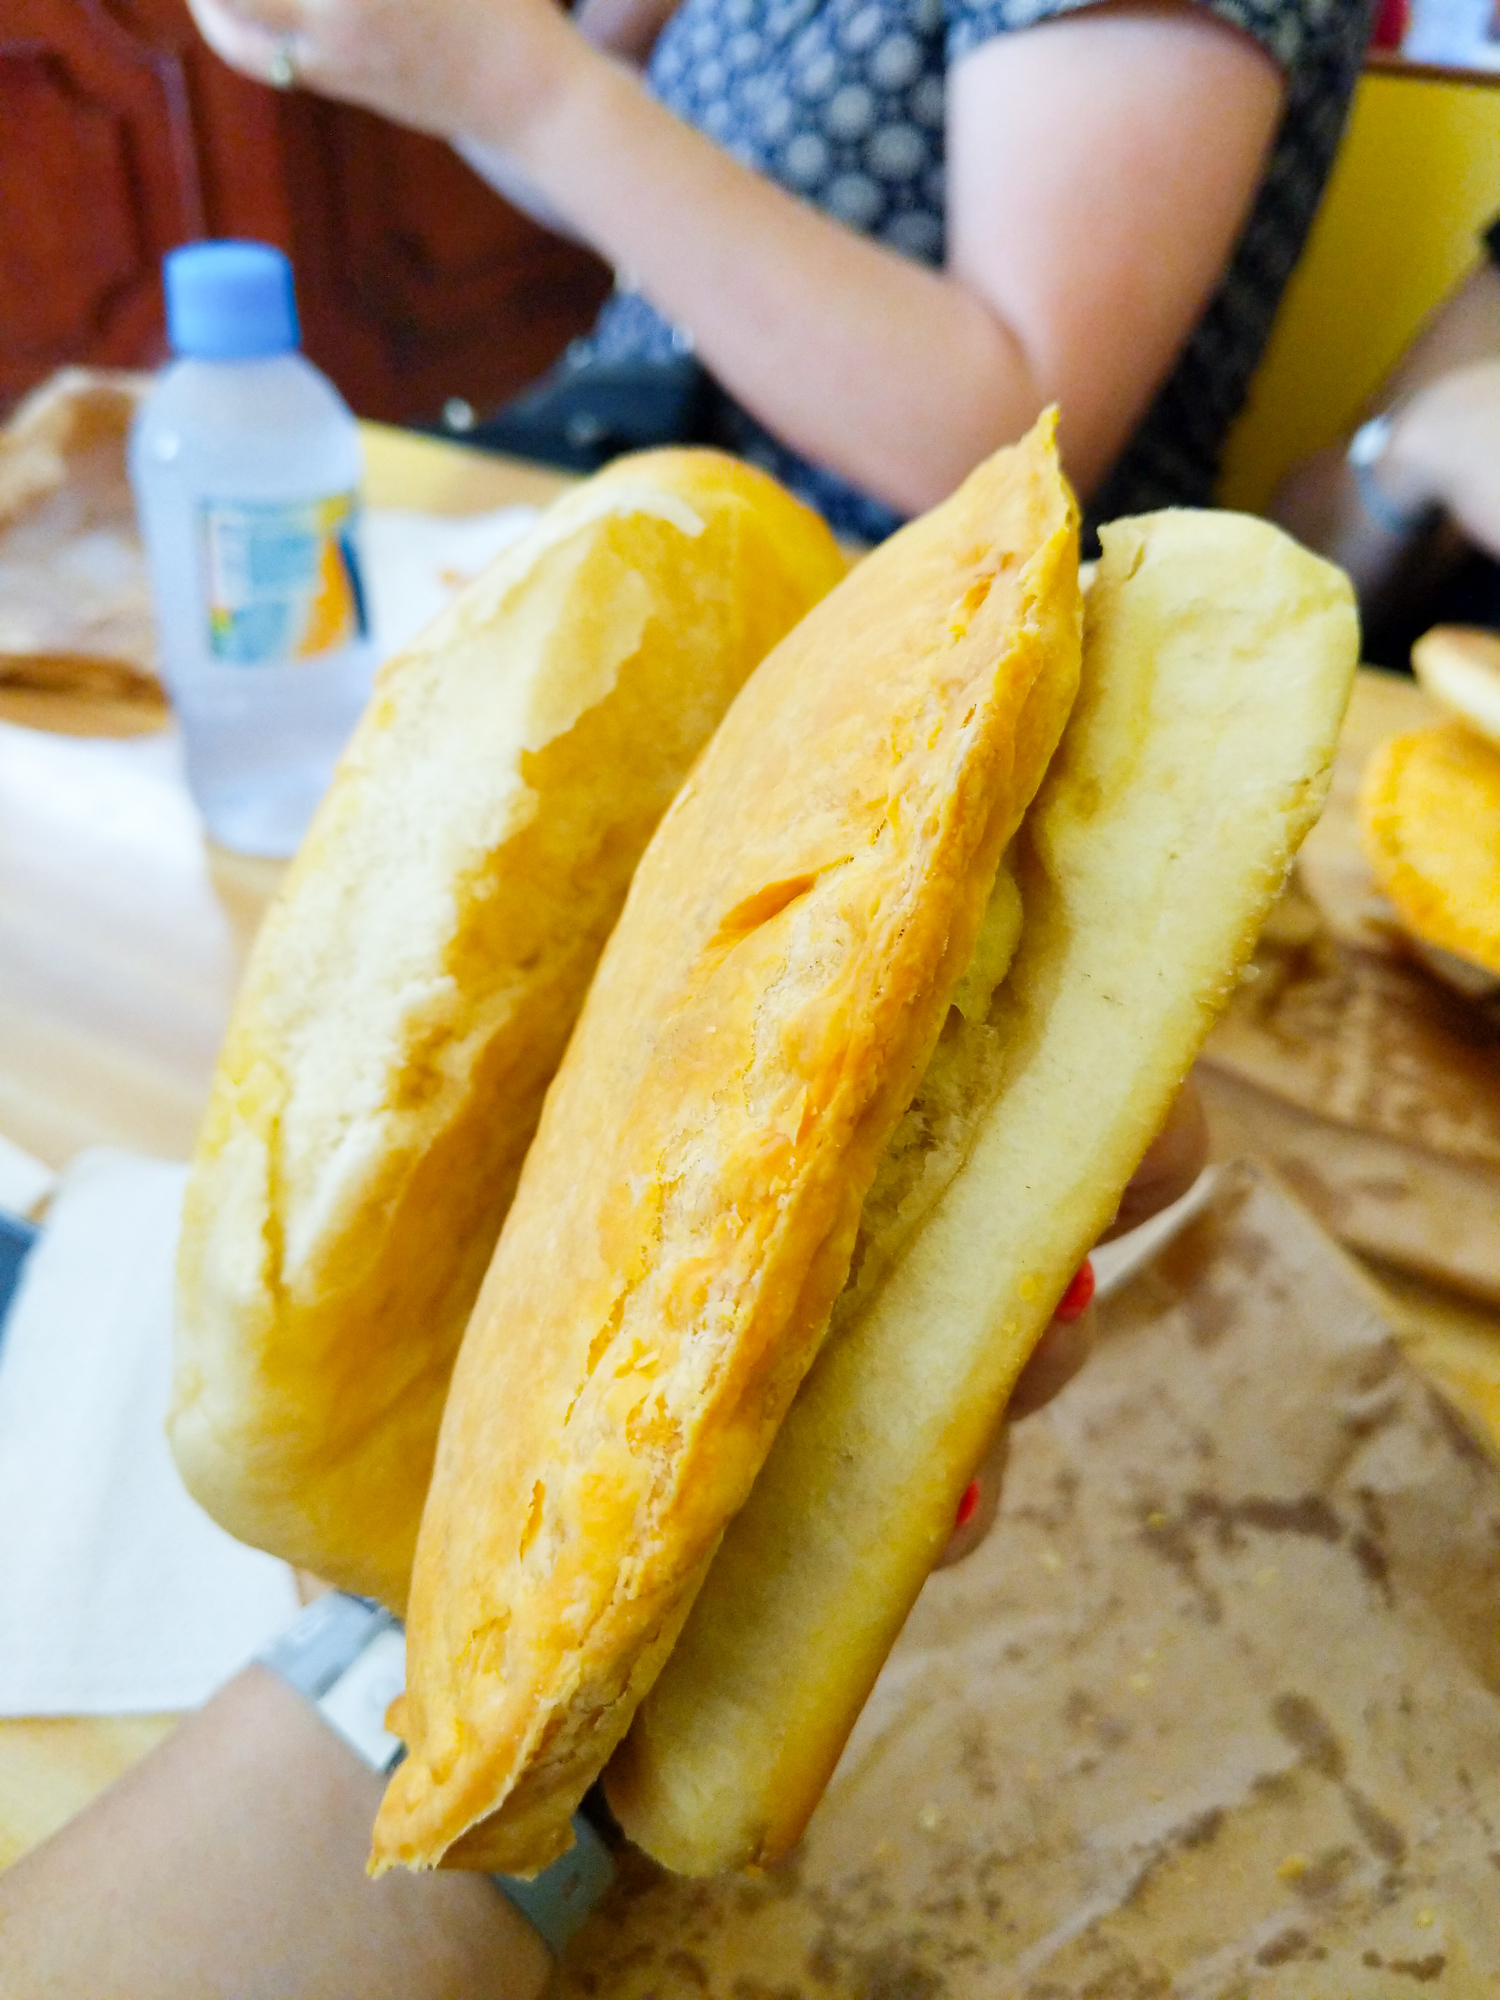 Beef patty in coco bread is just one traditional Jamaican food you need to try. The ultimate guide for what to eat in Jamaica, our best picks for 27 dishes, 6 desserts and 12 drinks you won't want to leave the island without trying.